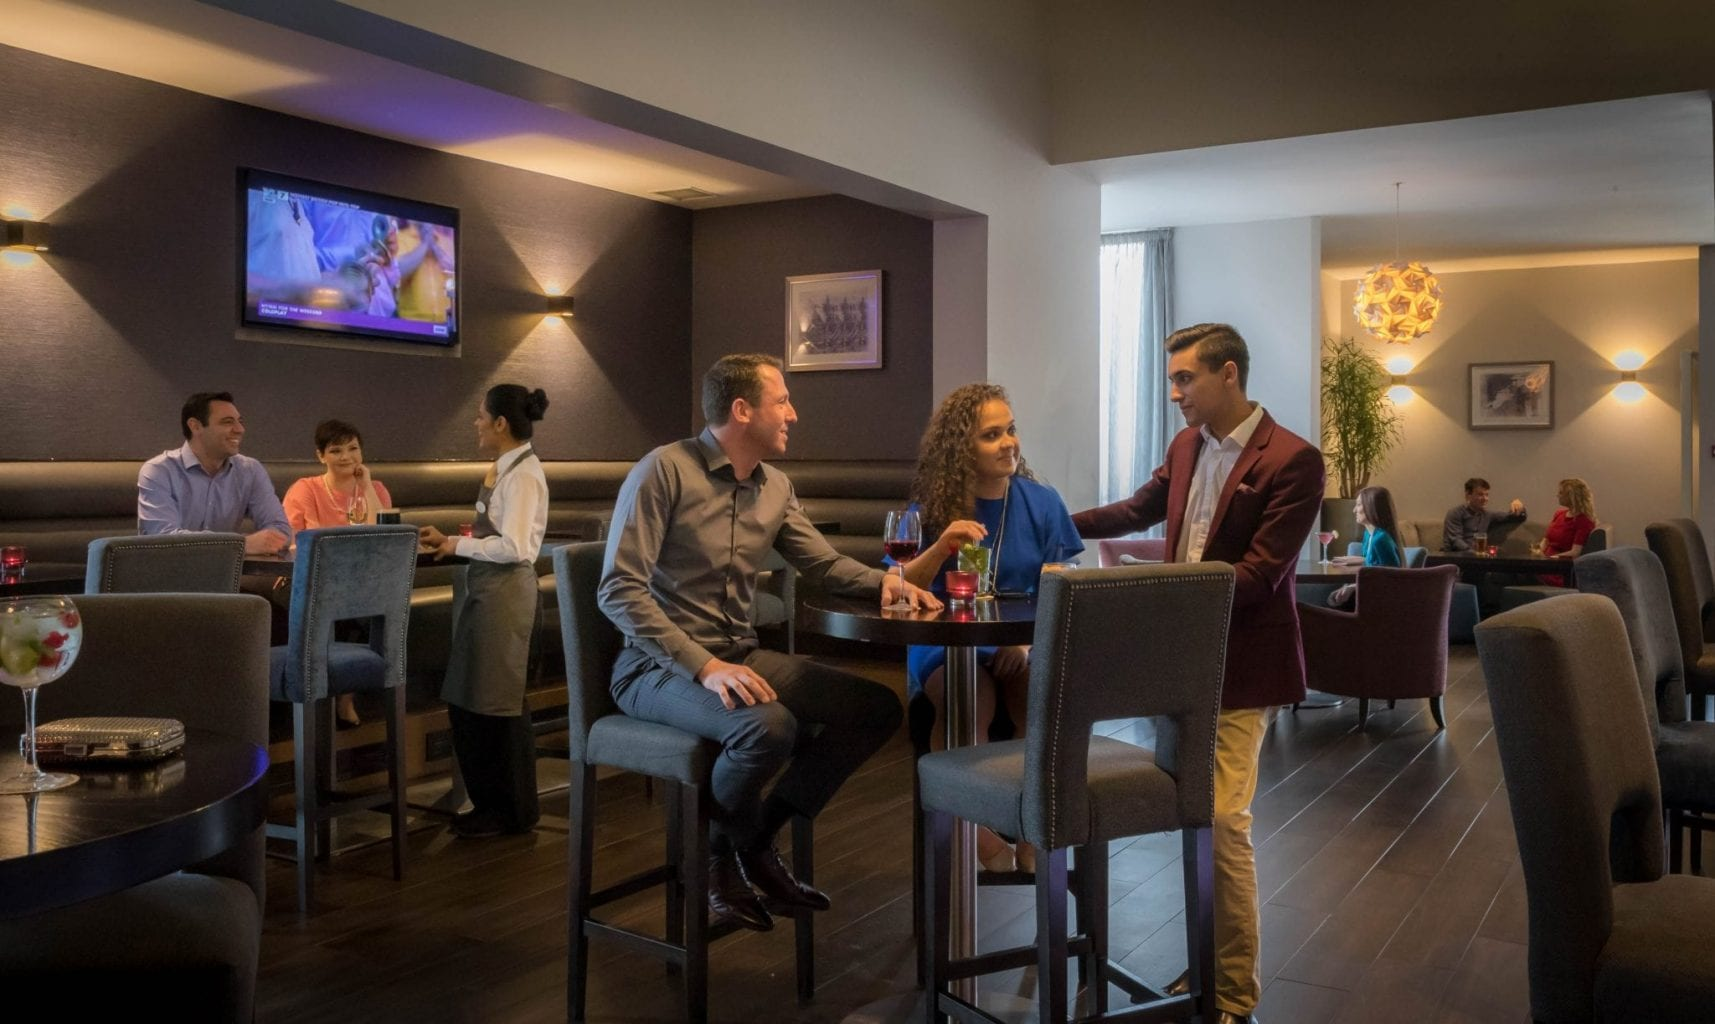 Relax and unwind in The Sky Bar at Maldron Hotel Dublin Airport